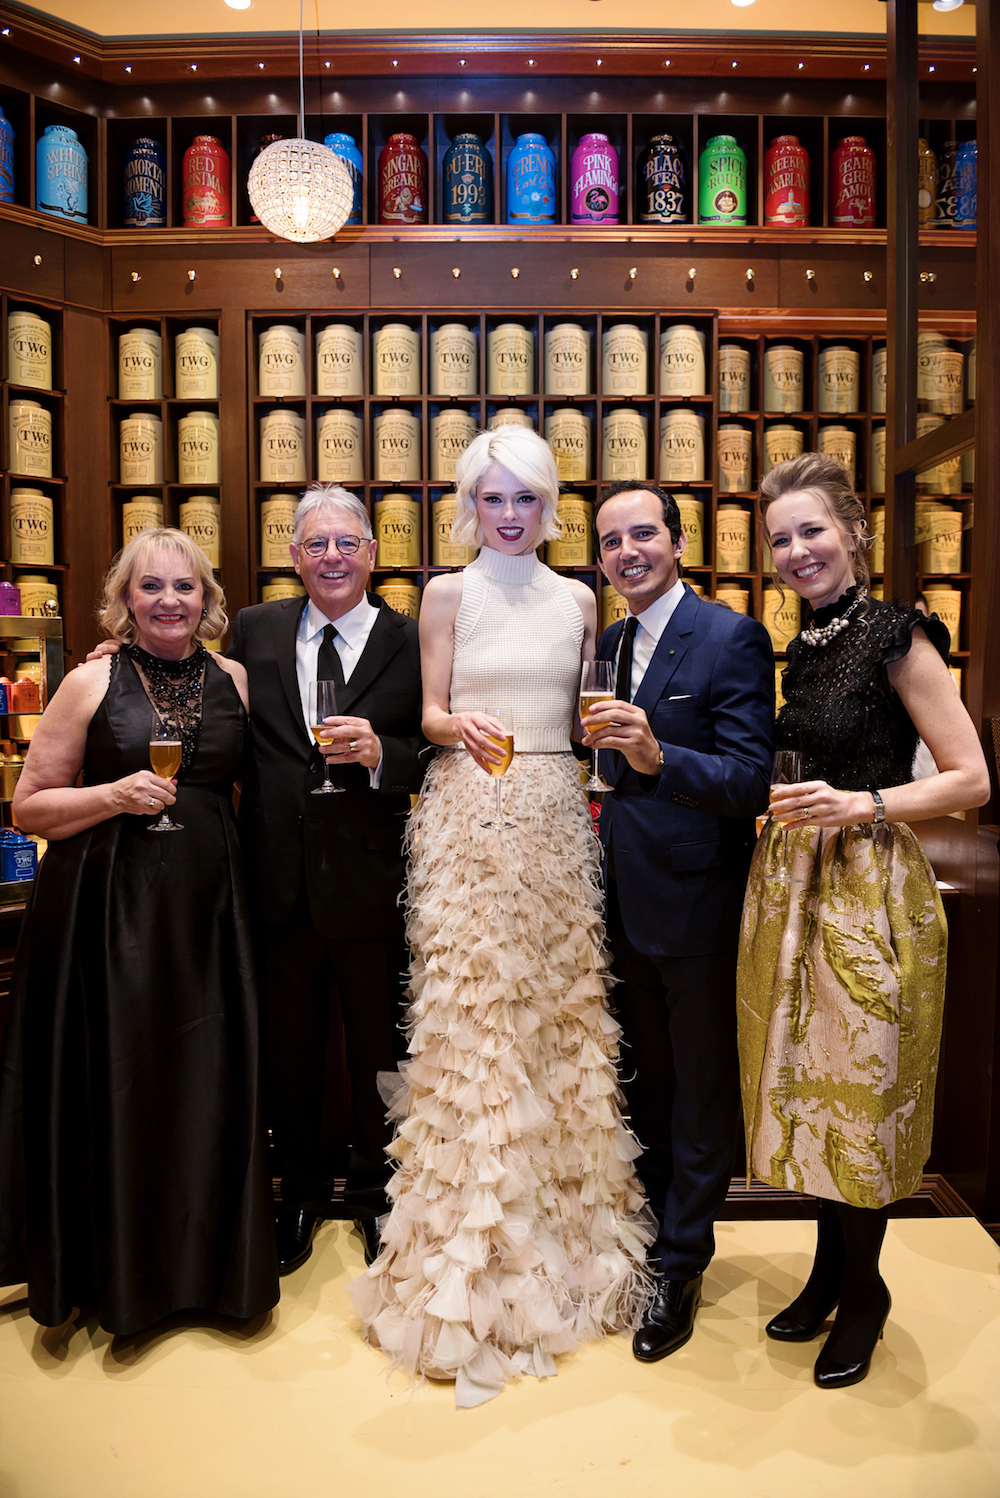 TWG opening vancouver